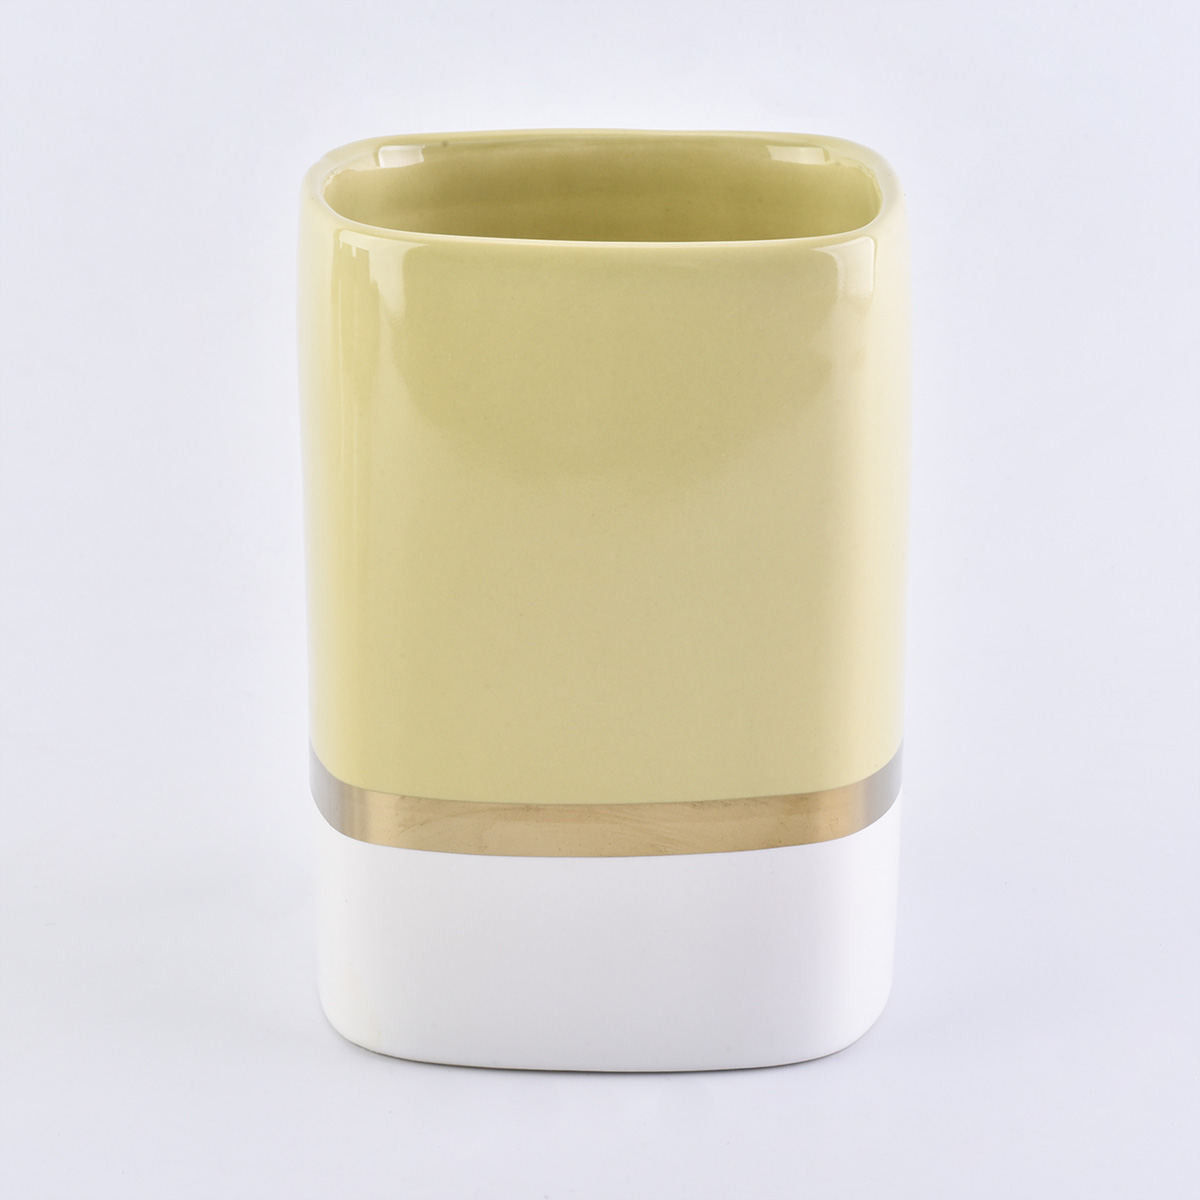 Square Shaped Ceramic Jars For Candle Making